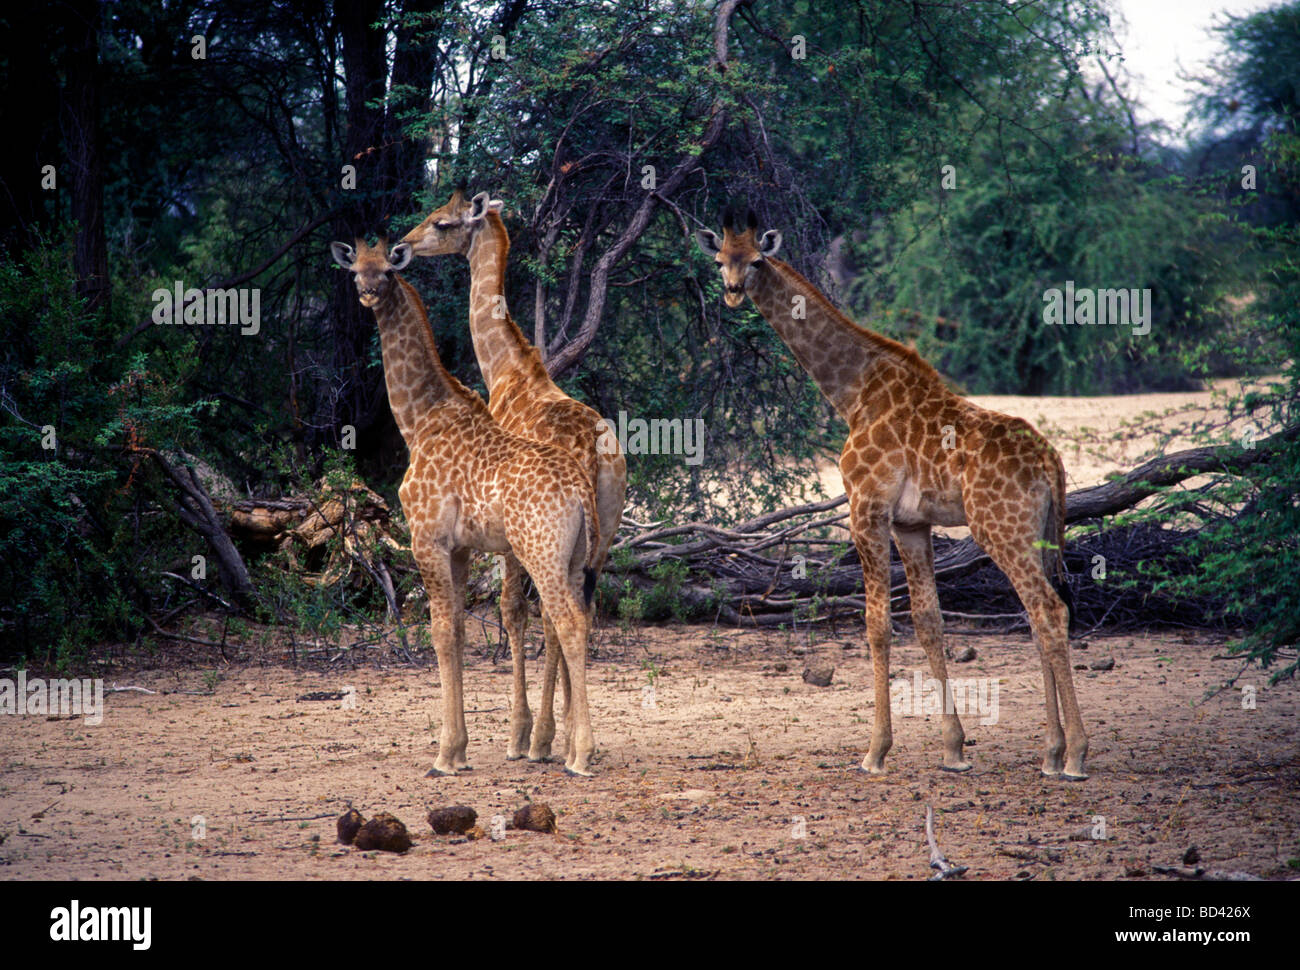 giraffe, giraffes, long legs, long neck, Hwange National Park, Matabeleland North Province, Zimbabwe, Africa Stock Photo